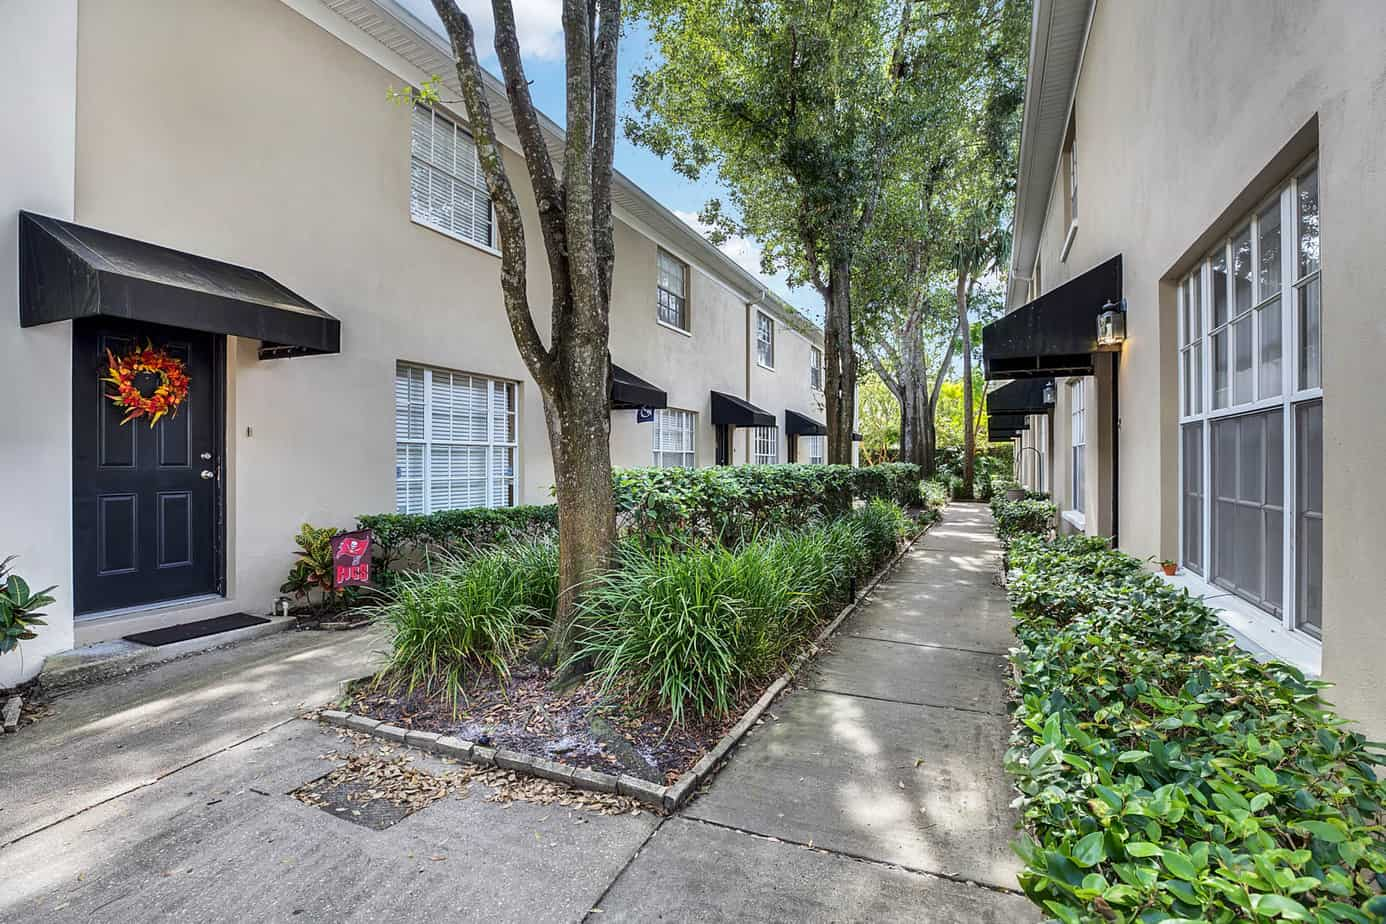 exterior of 408 S Arrawana Ave Tampa FL 33609 showing 6 condos